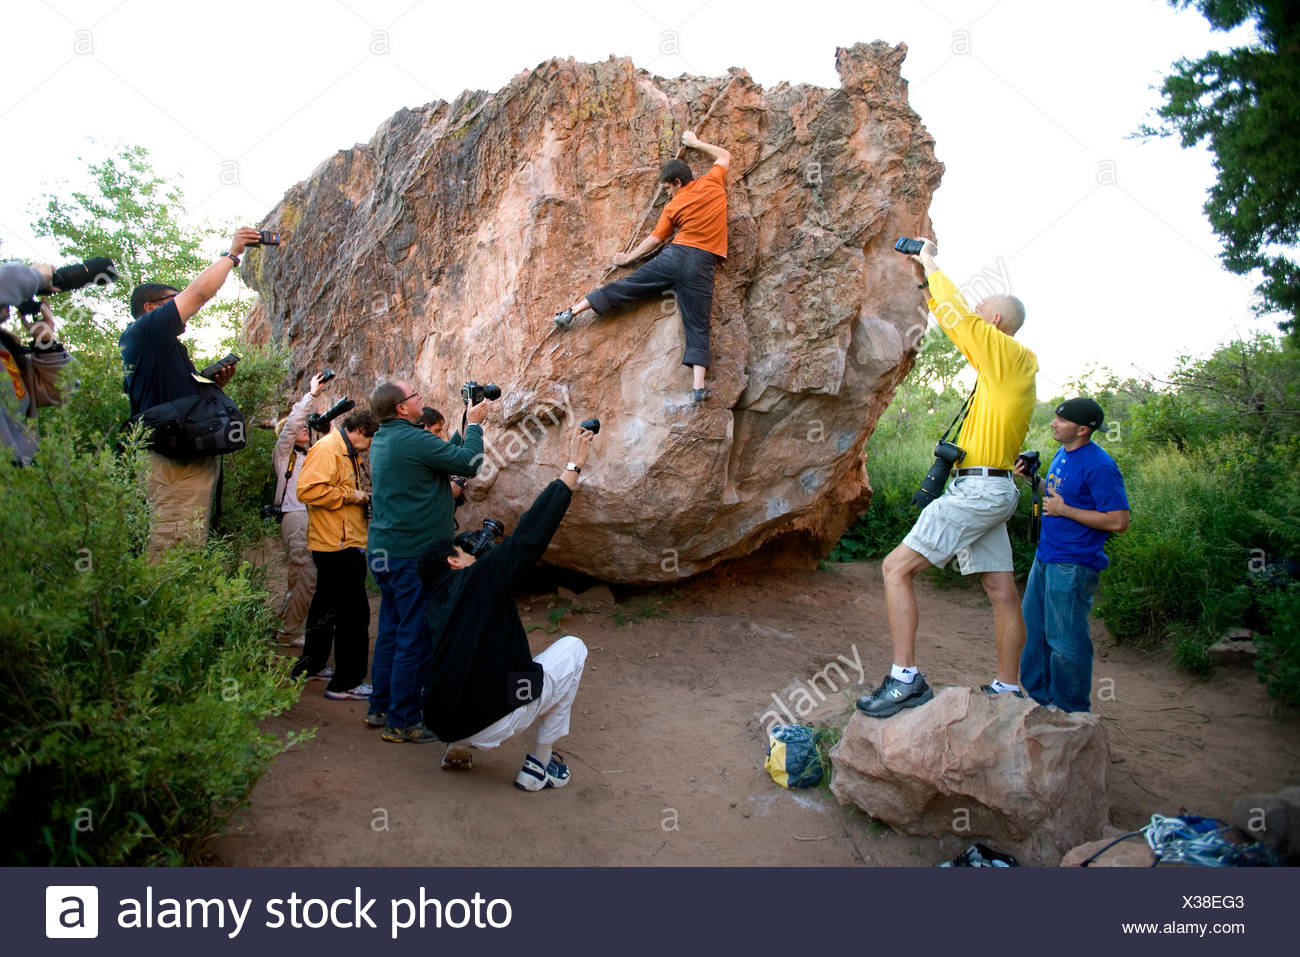 Photographers take pictures of man climbing, Colorado Springs - Stock Image